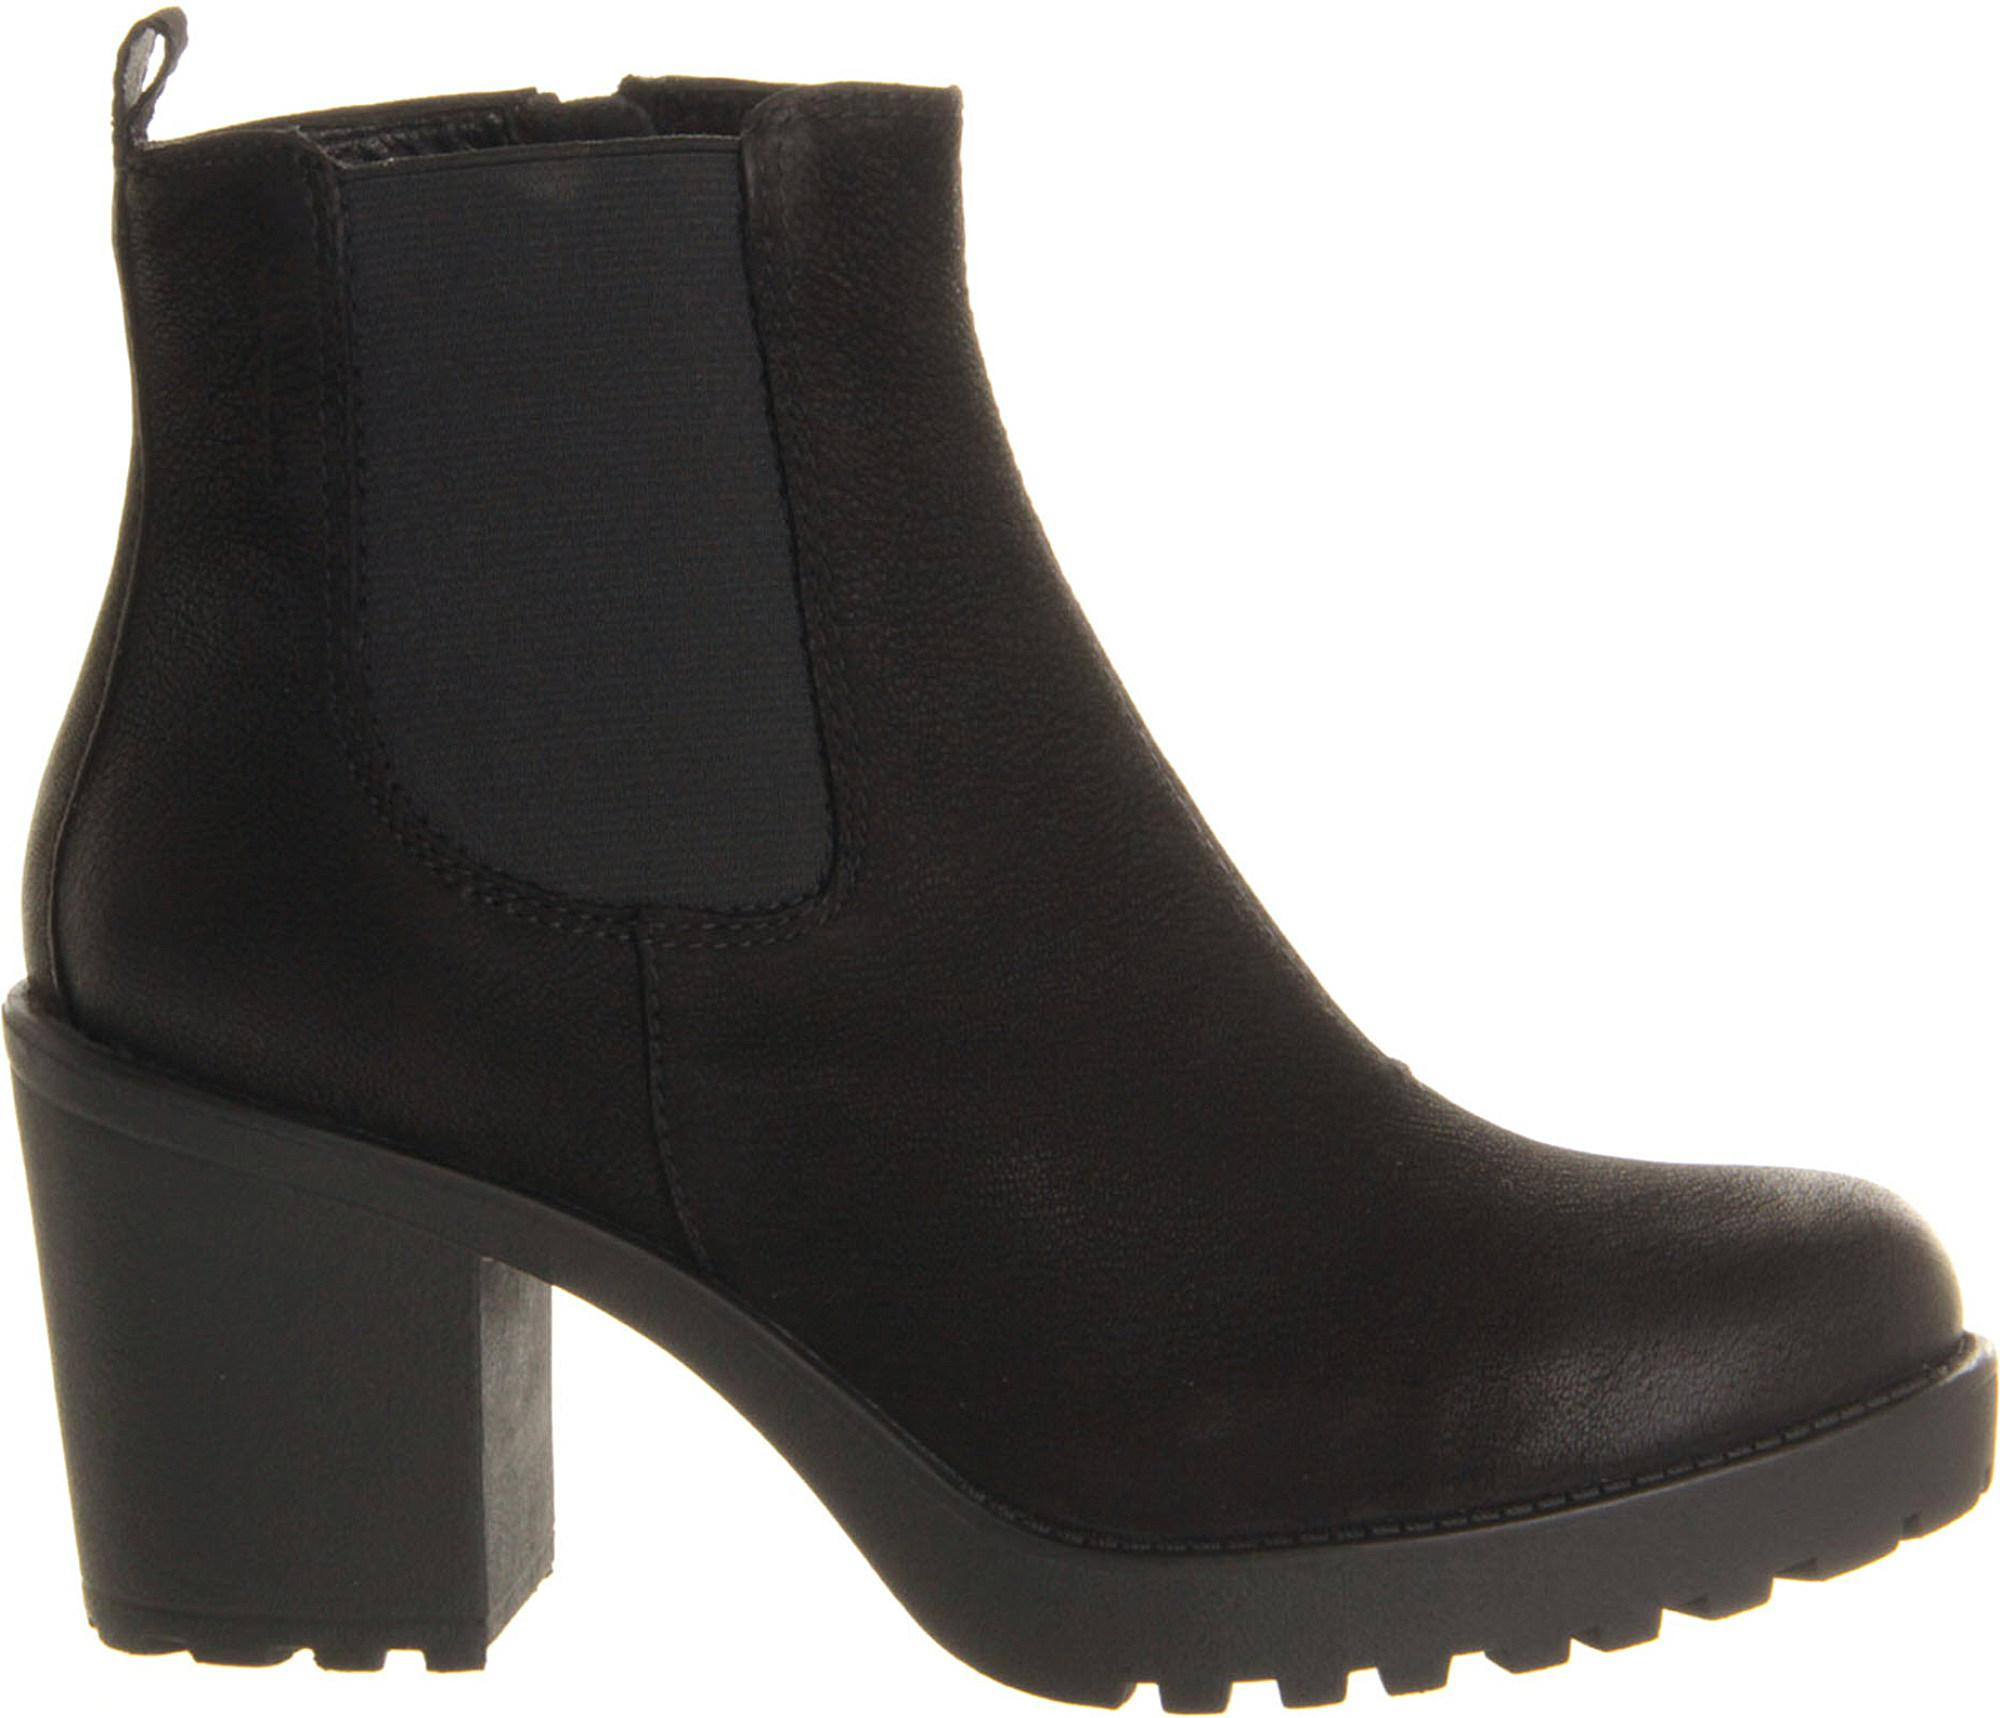 d717269d563d Lyst - Vagabond Grace Heeled Leather Chelsea Boot in Black - Save 4%